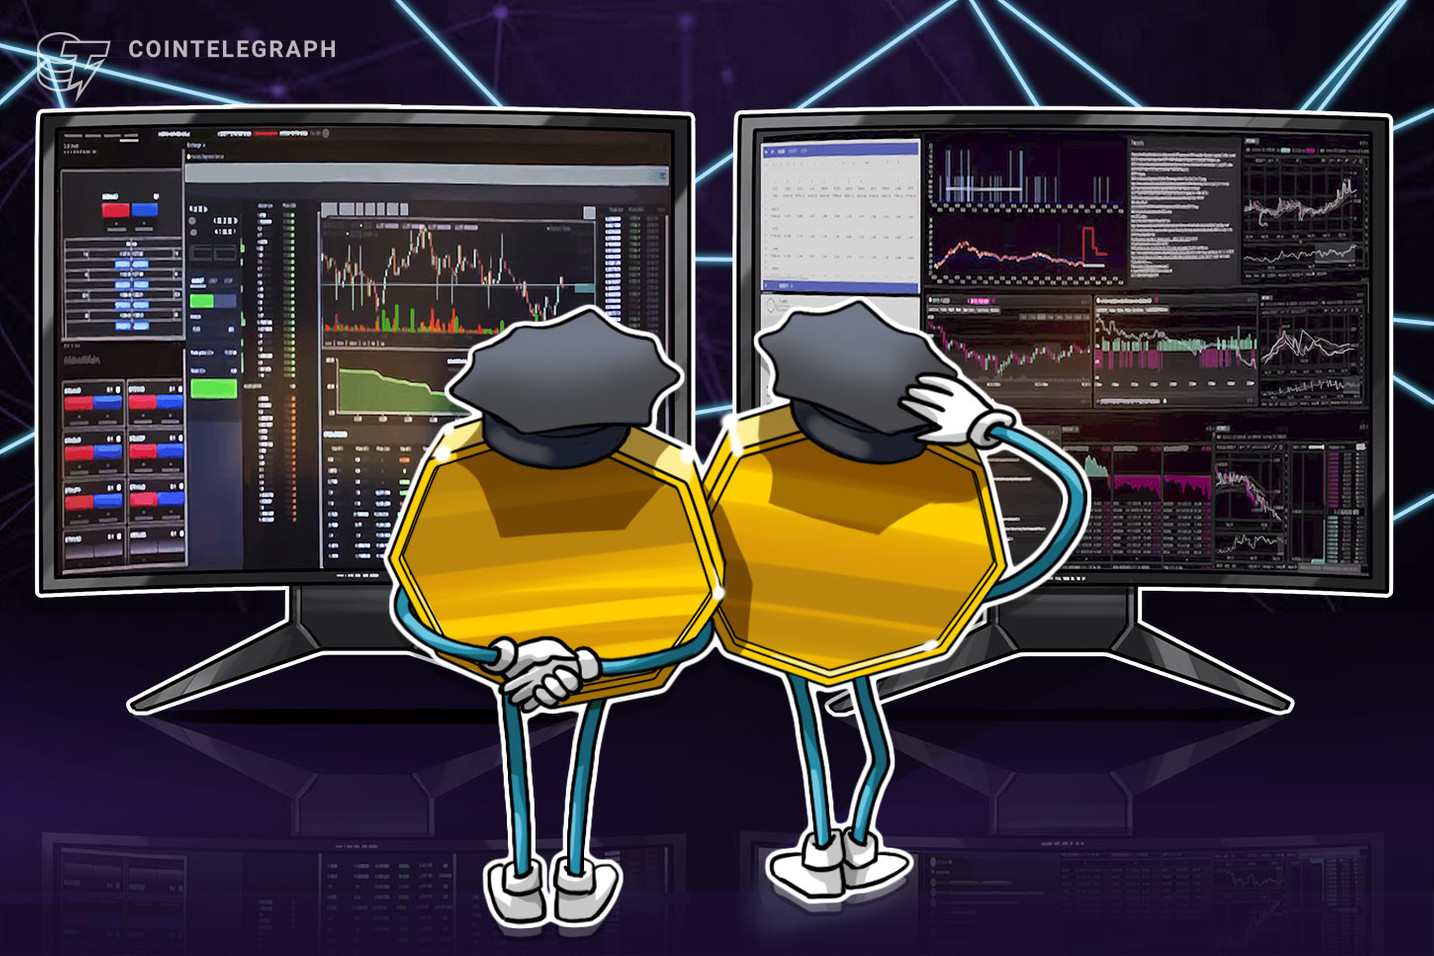 Bitwise Tells US SEC That 95% of Volume on Unregulated Crypto Exchanges Is Suspect